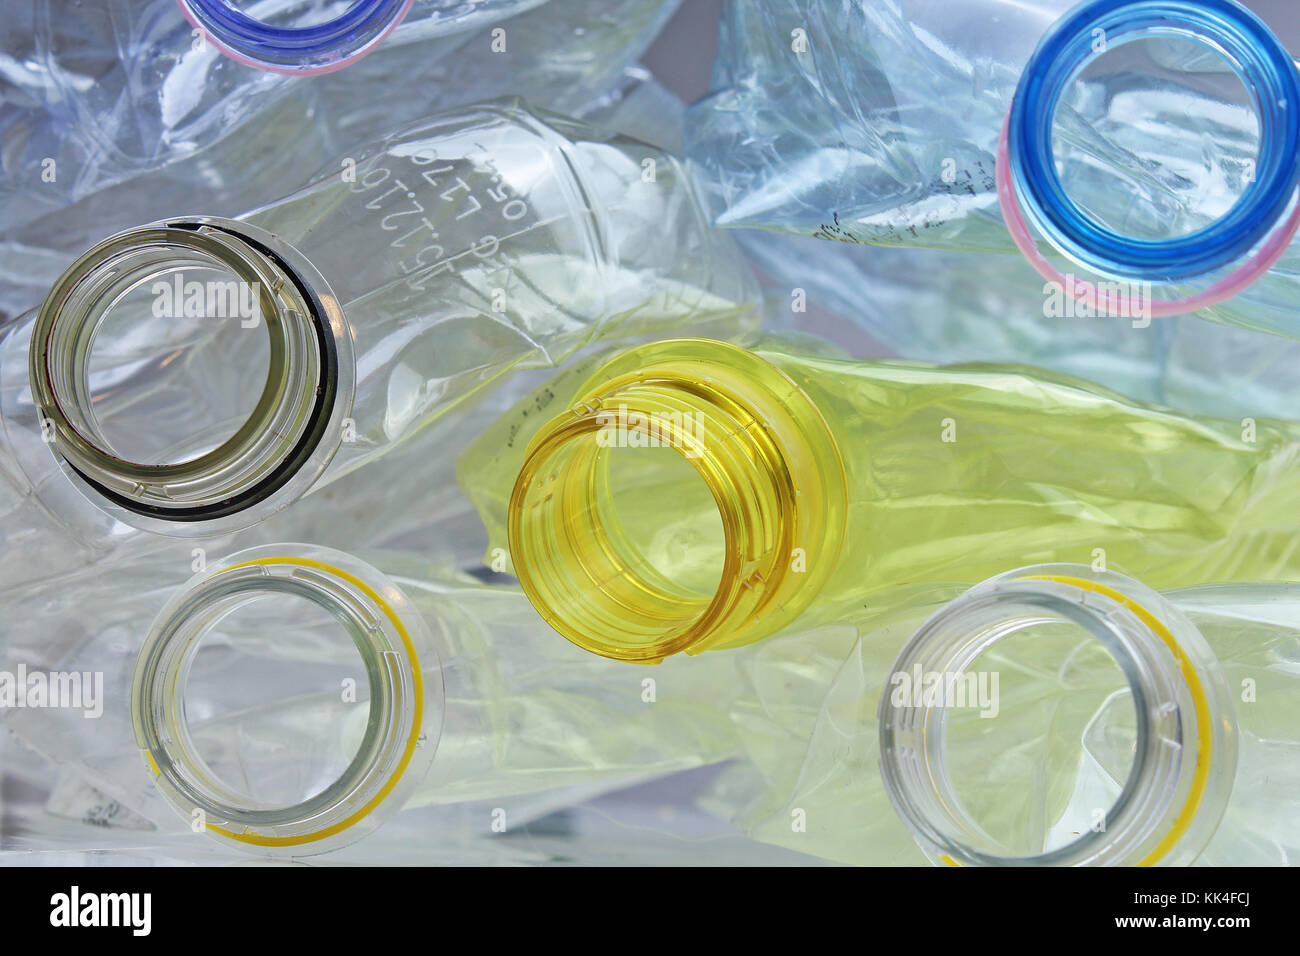 Bottles made of polyethylene terephthalate PET sometimes PETE can be recycled to reuse the material out of which - Stock Image